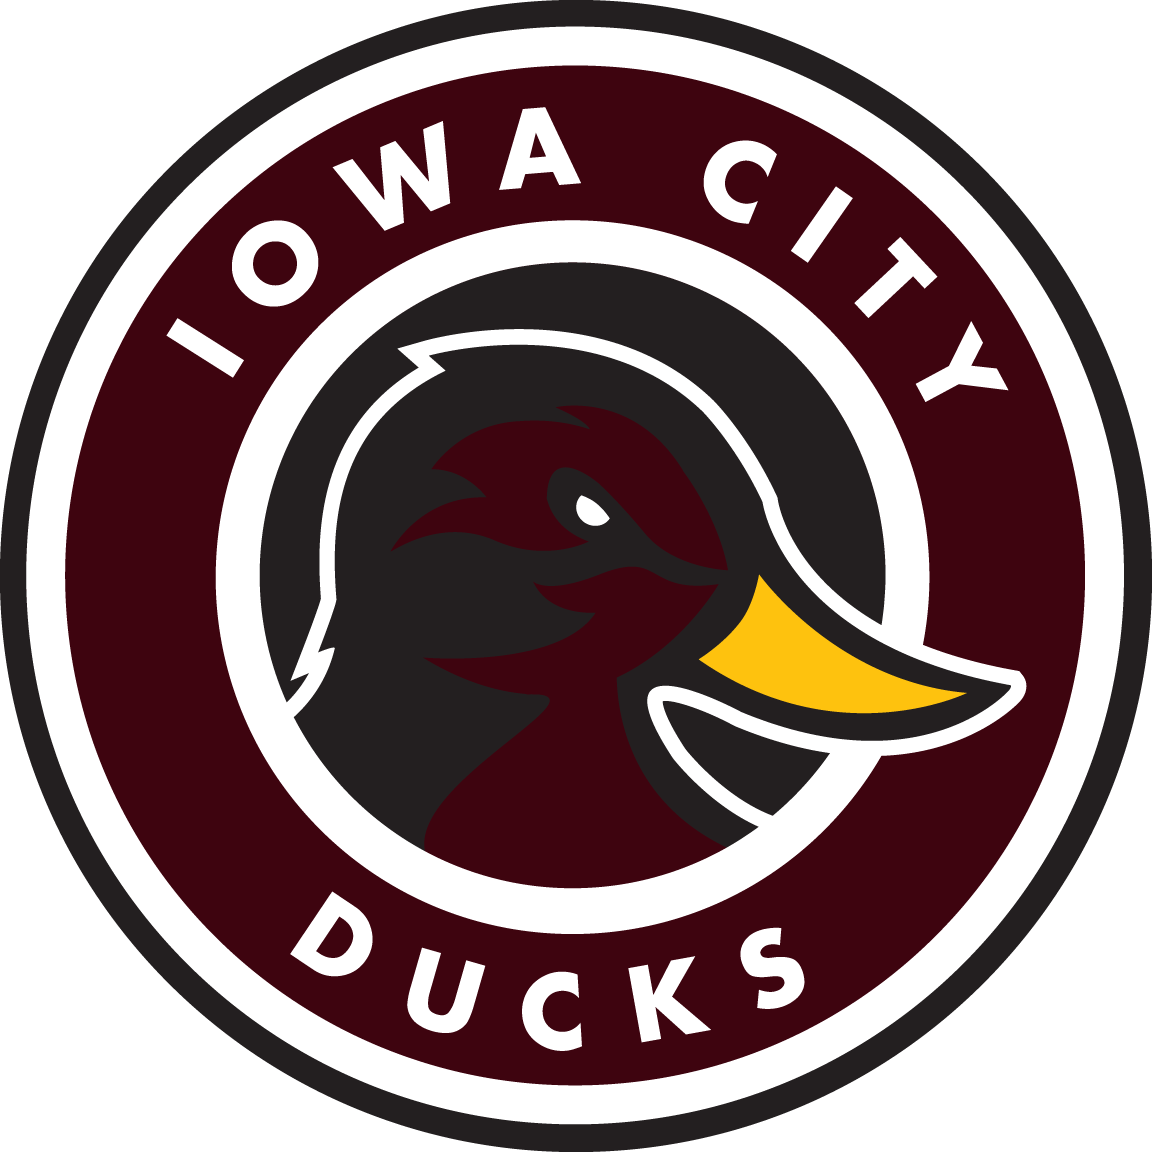 Iowa City Ducks